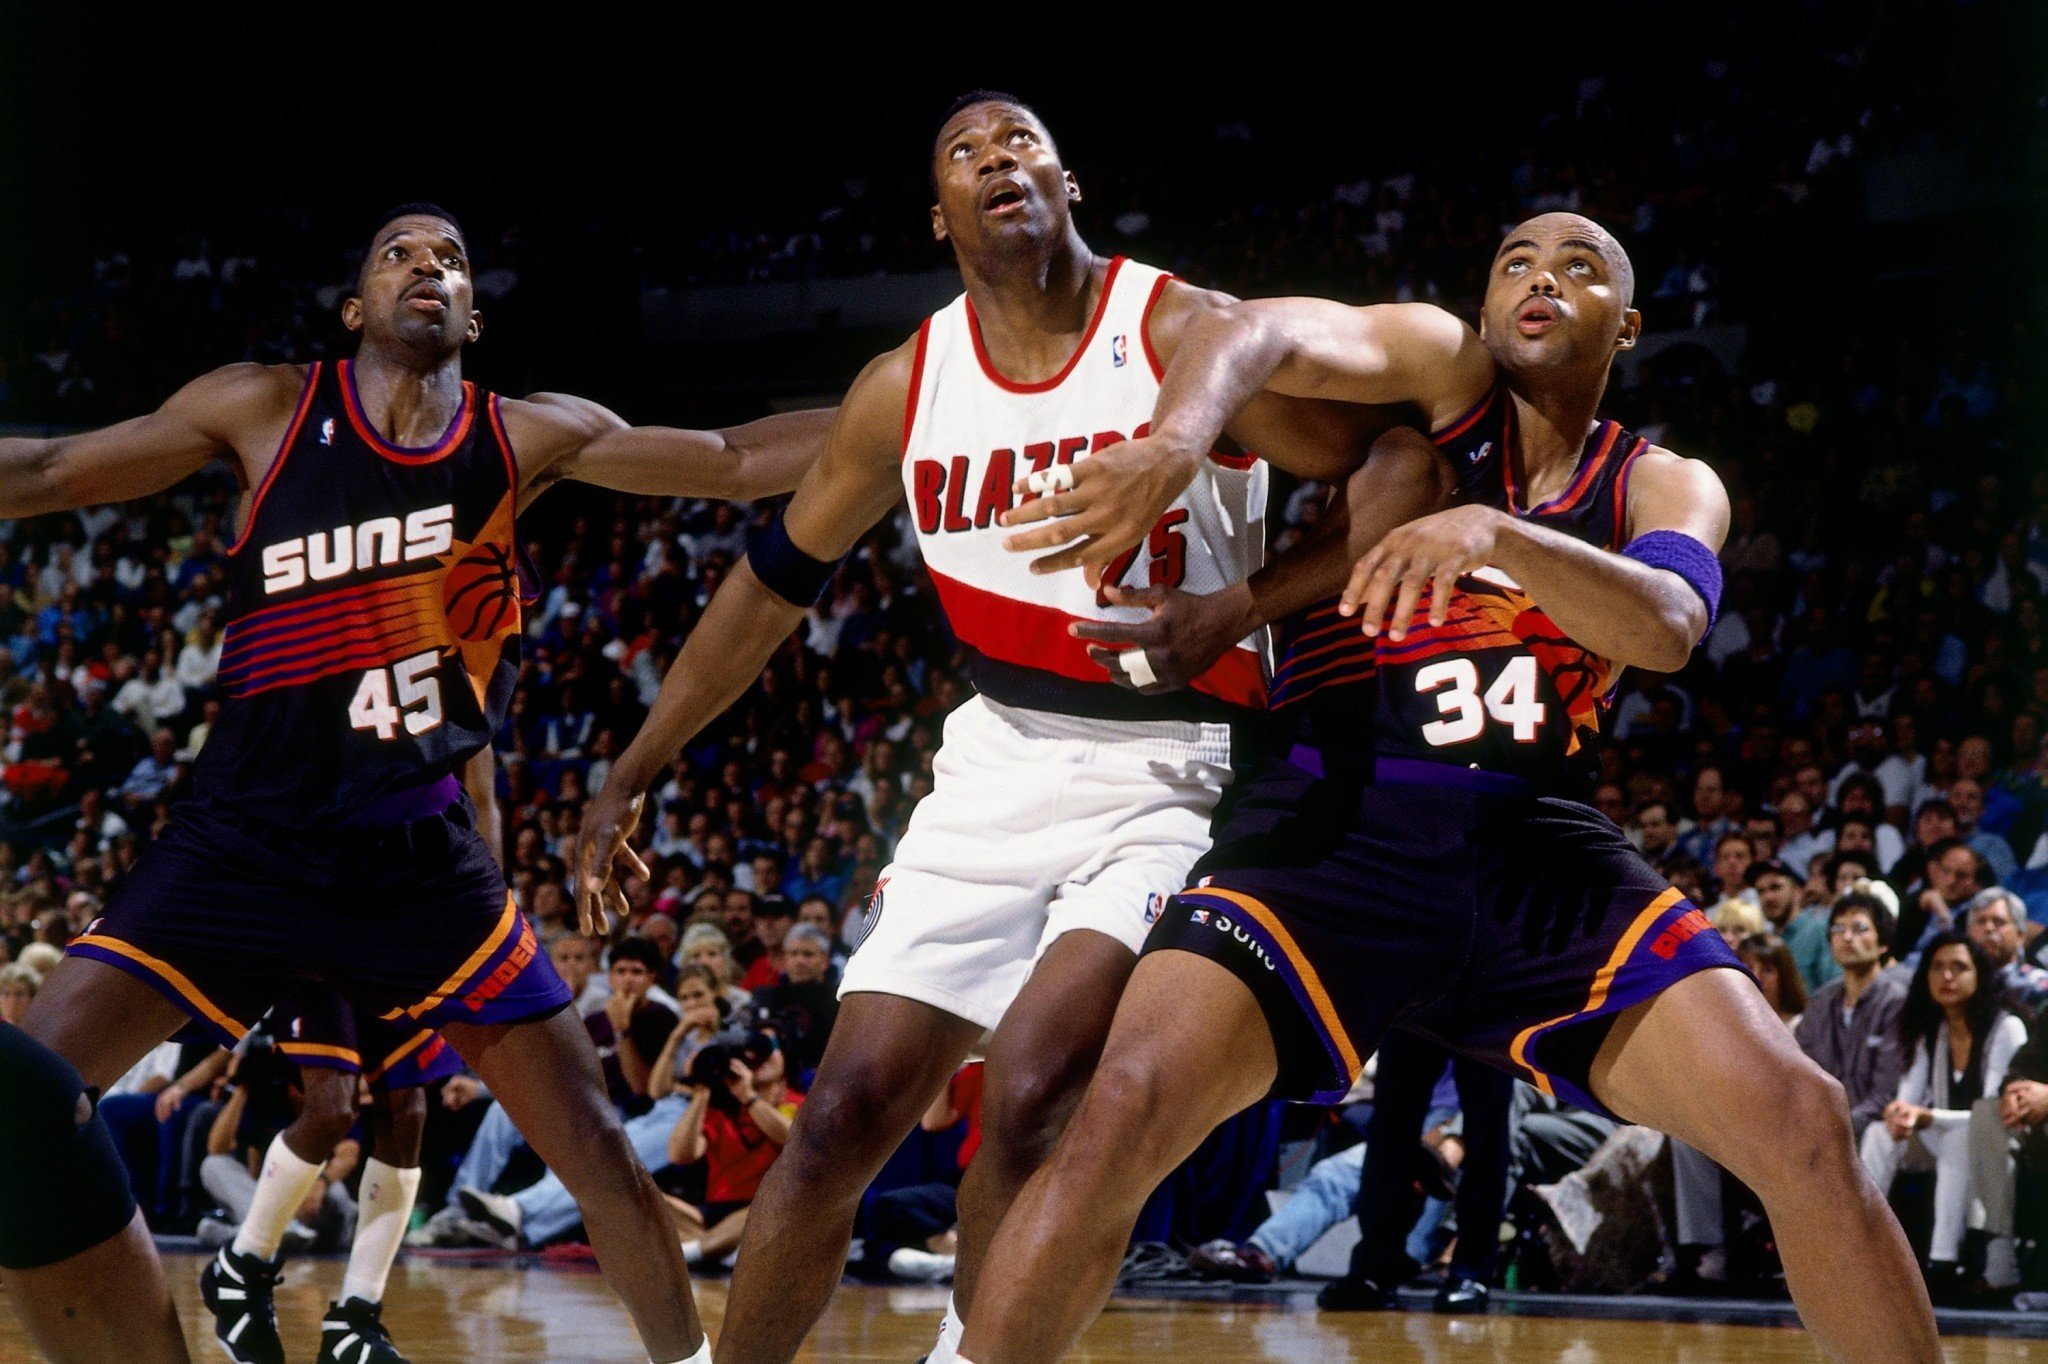 Jerome Kersey (center) battles A.C. Green (left) and Charles Barkley for rebounding position during the 1995 Western Conference Quarterfinals. (Andrew D. Bernstein/NBAE/Getty Images)